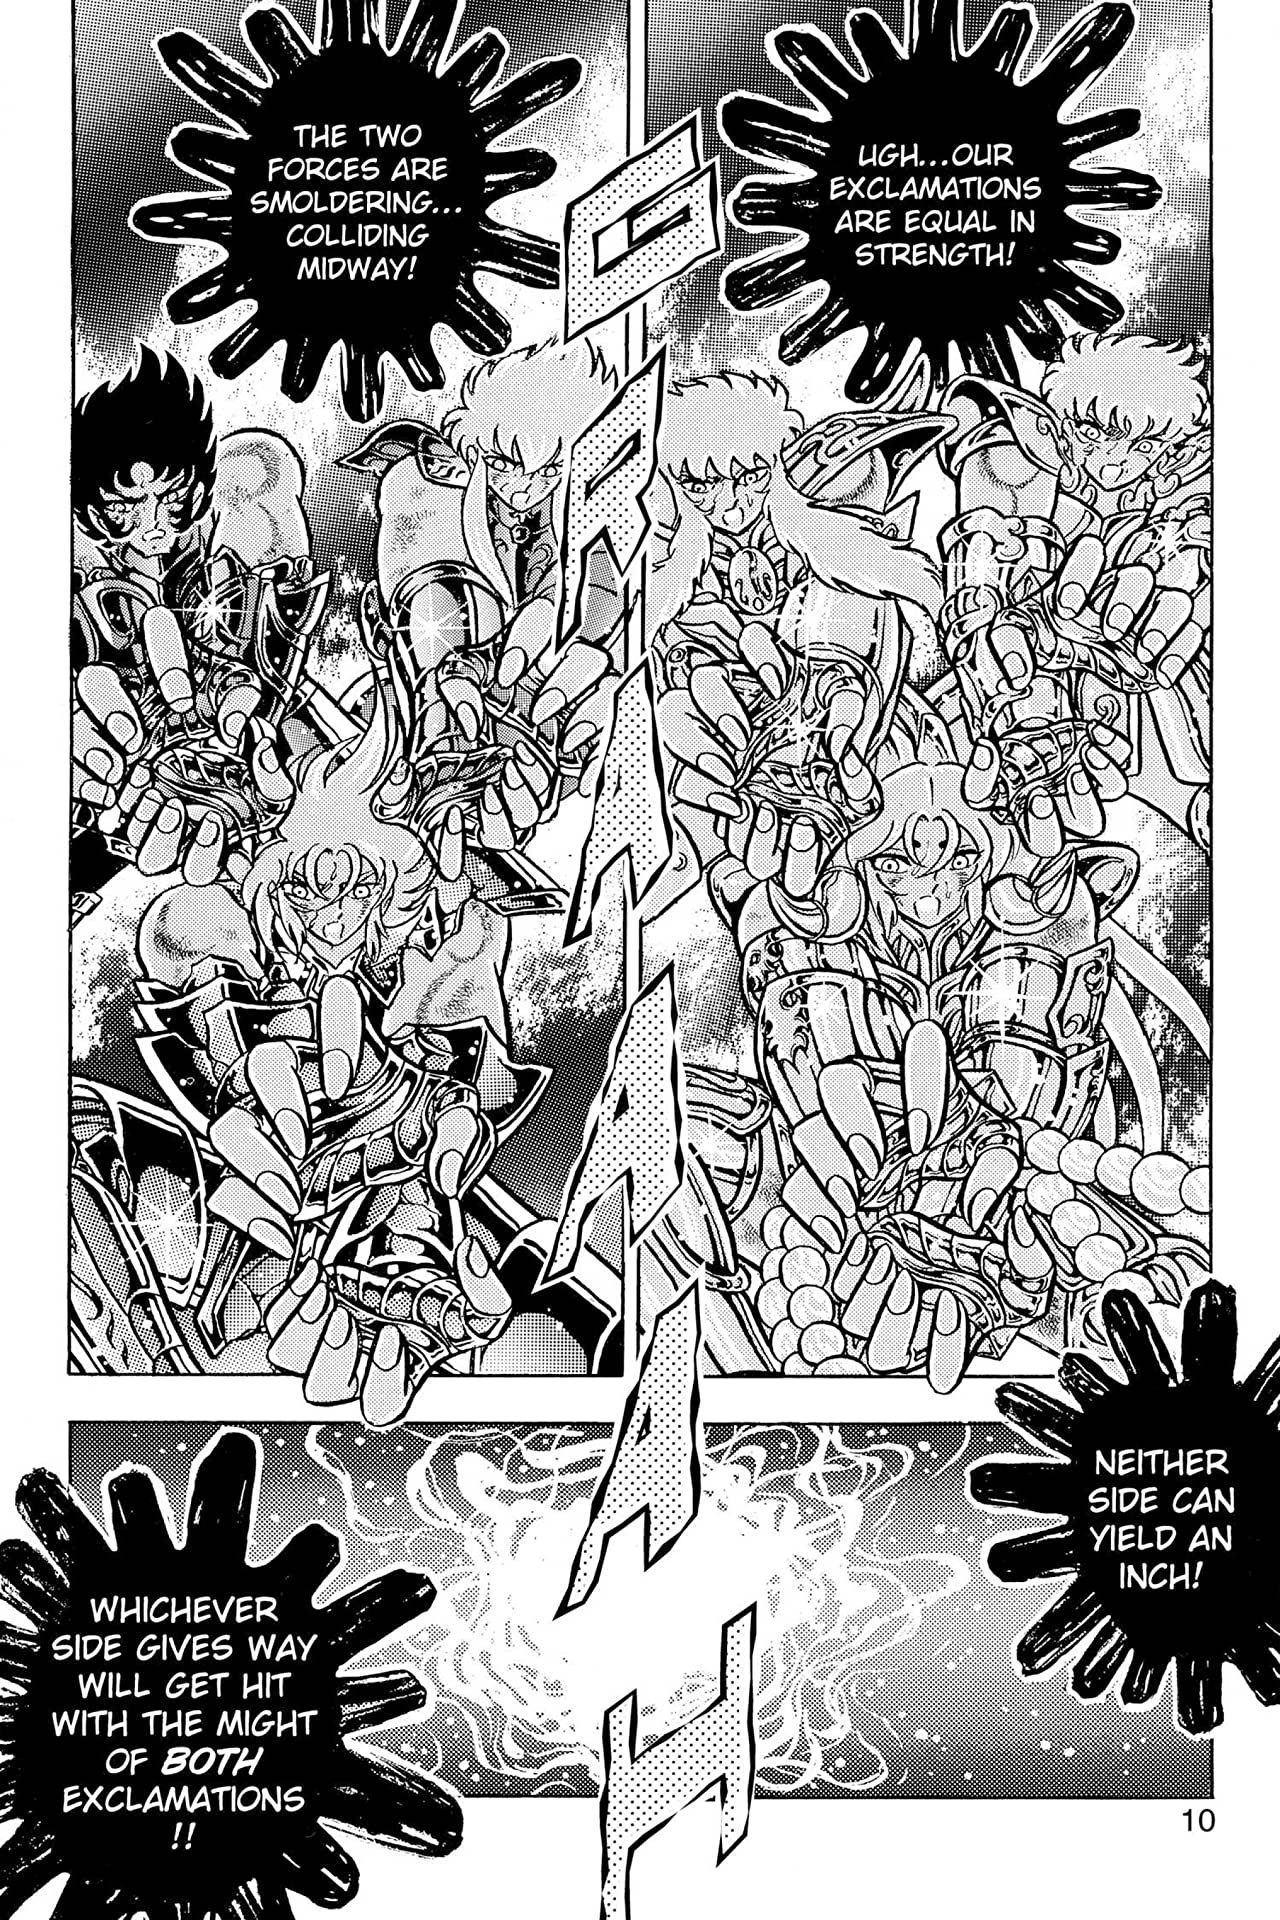 Knights of the Zodiac (Saint Seiya) Vol. 22